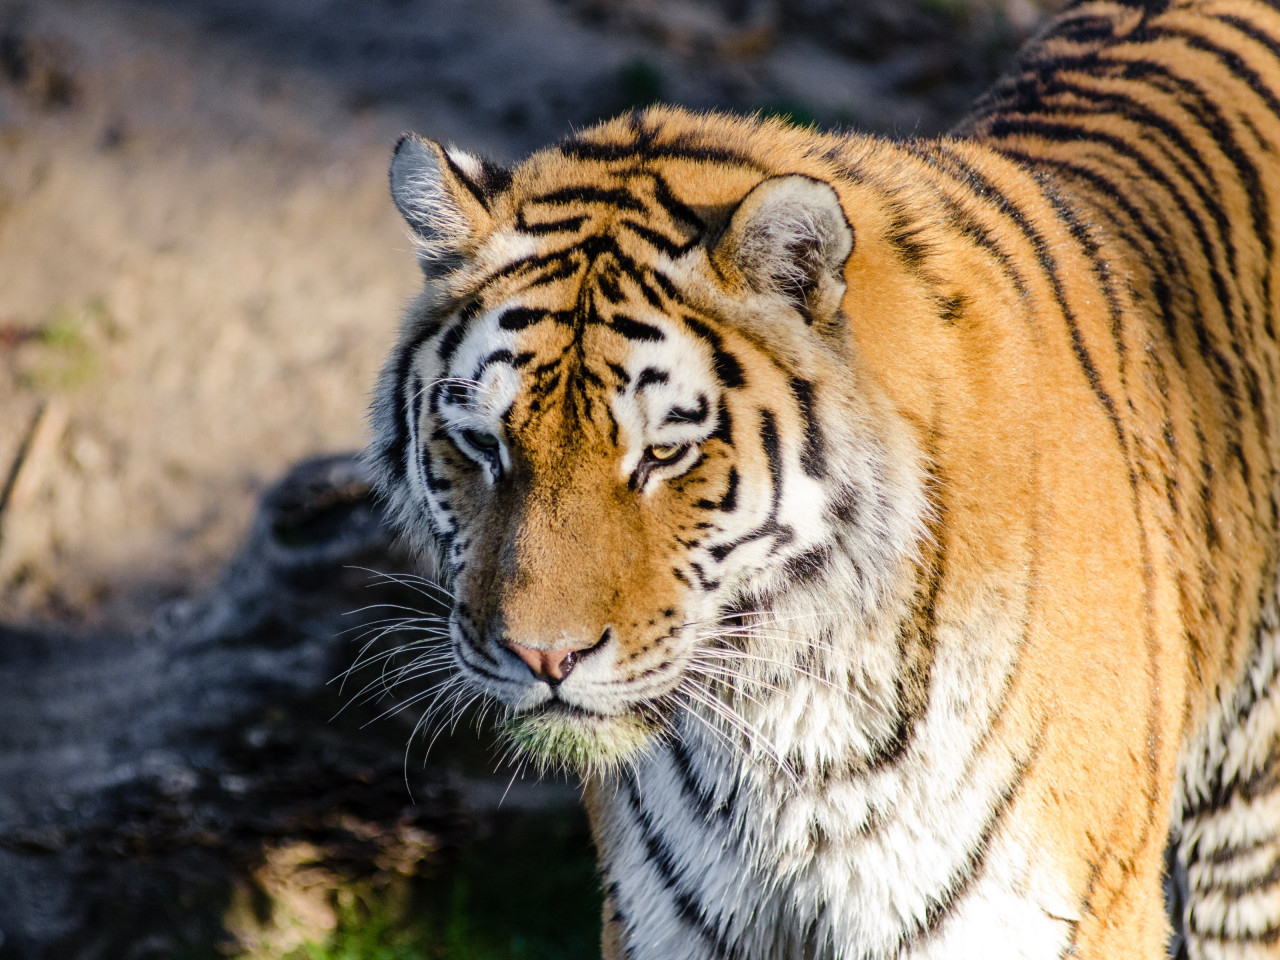 Siberian tiger at Zoo wallpaper 1280x960